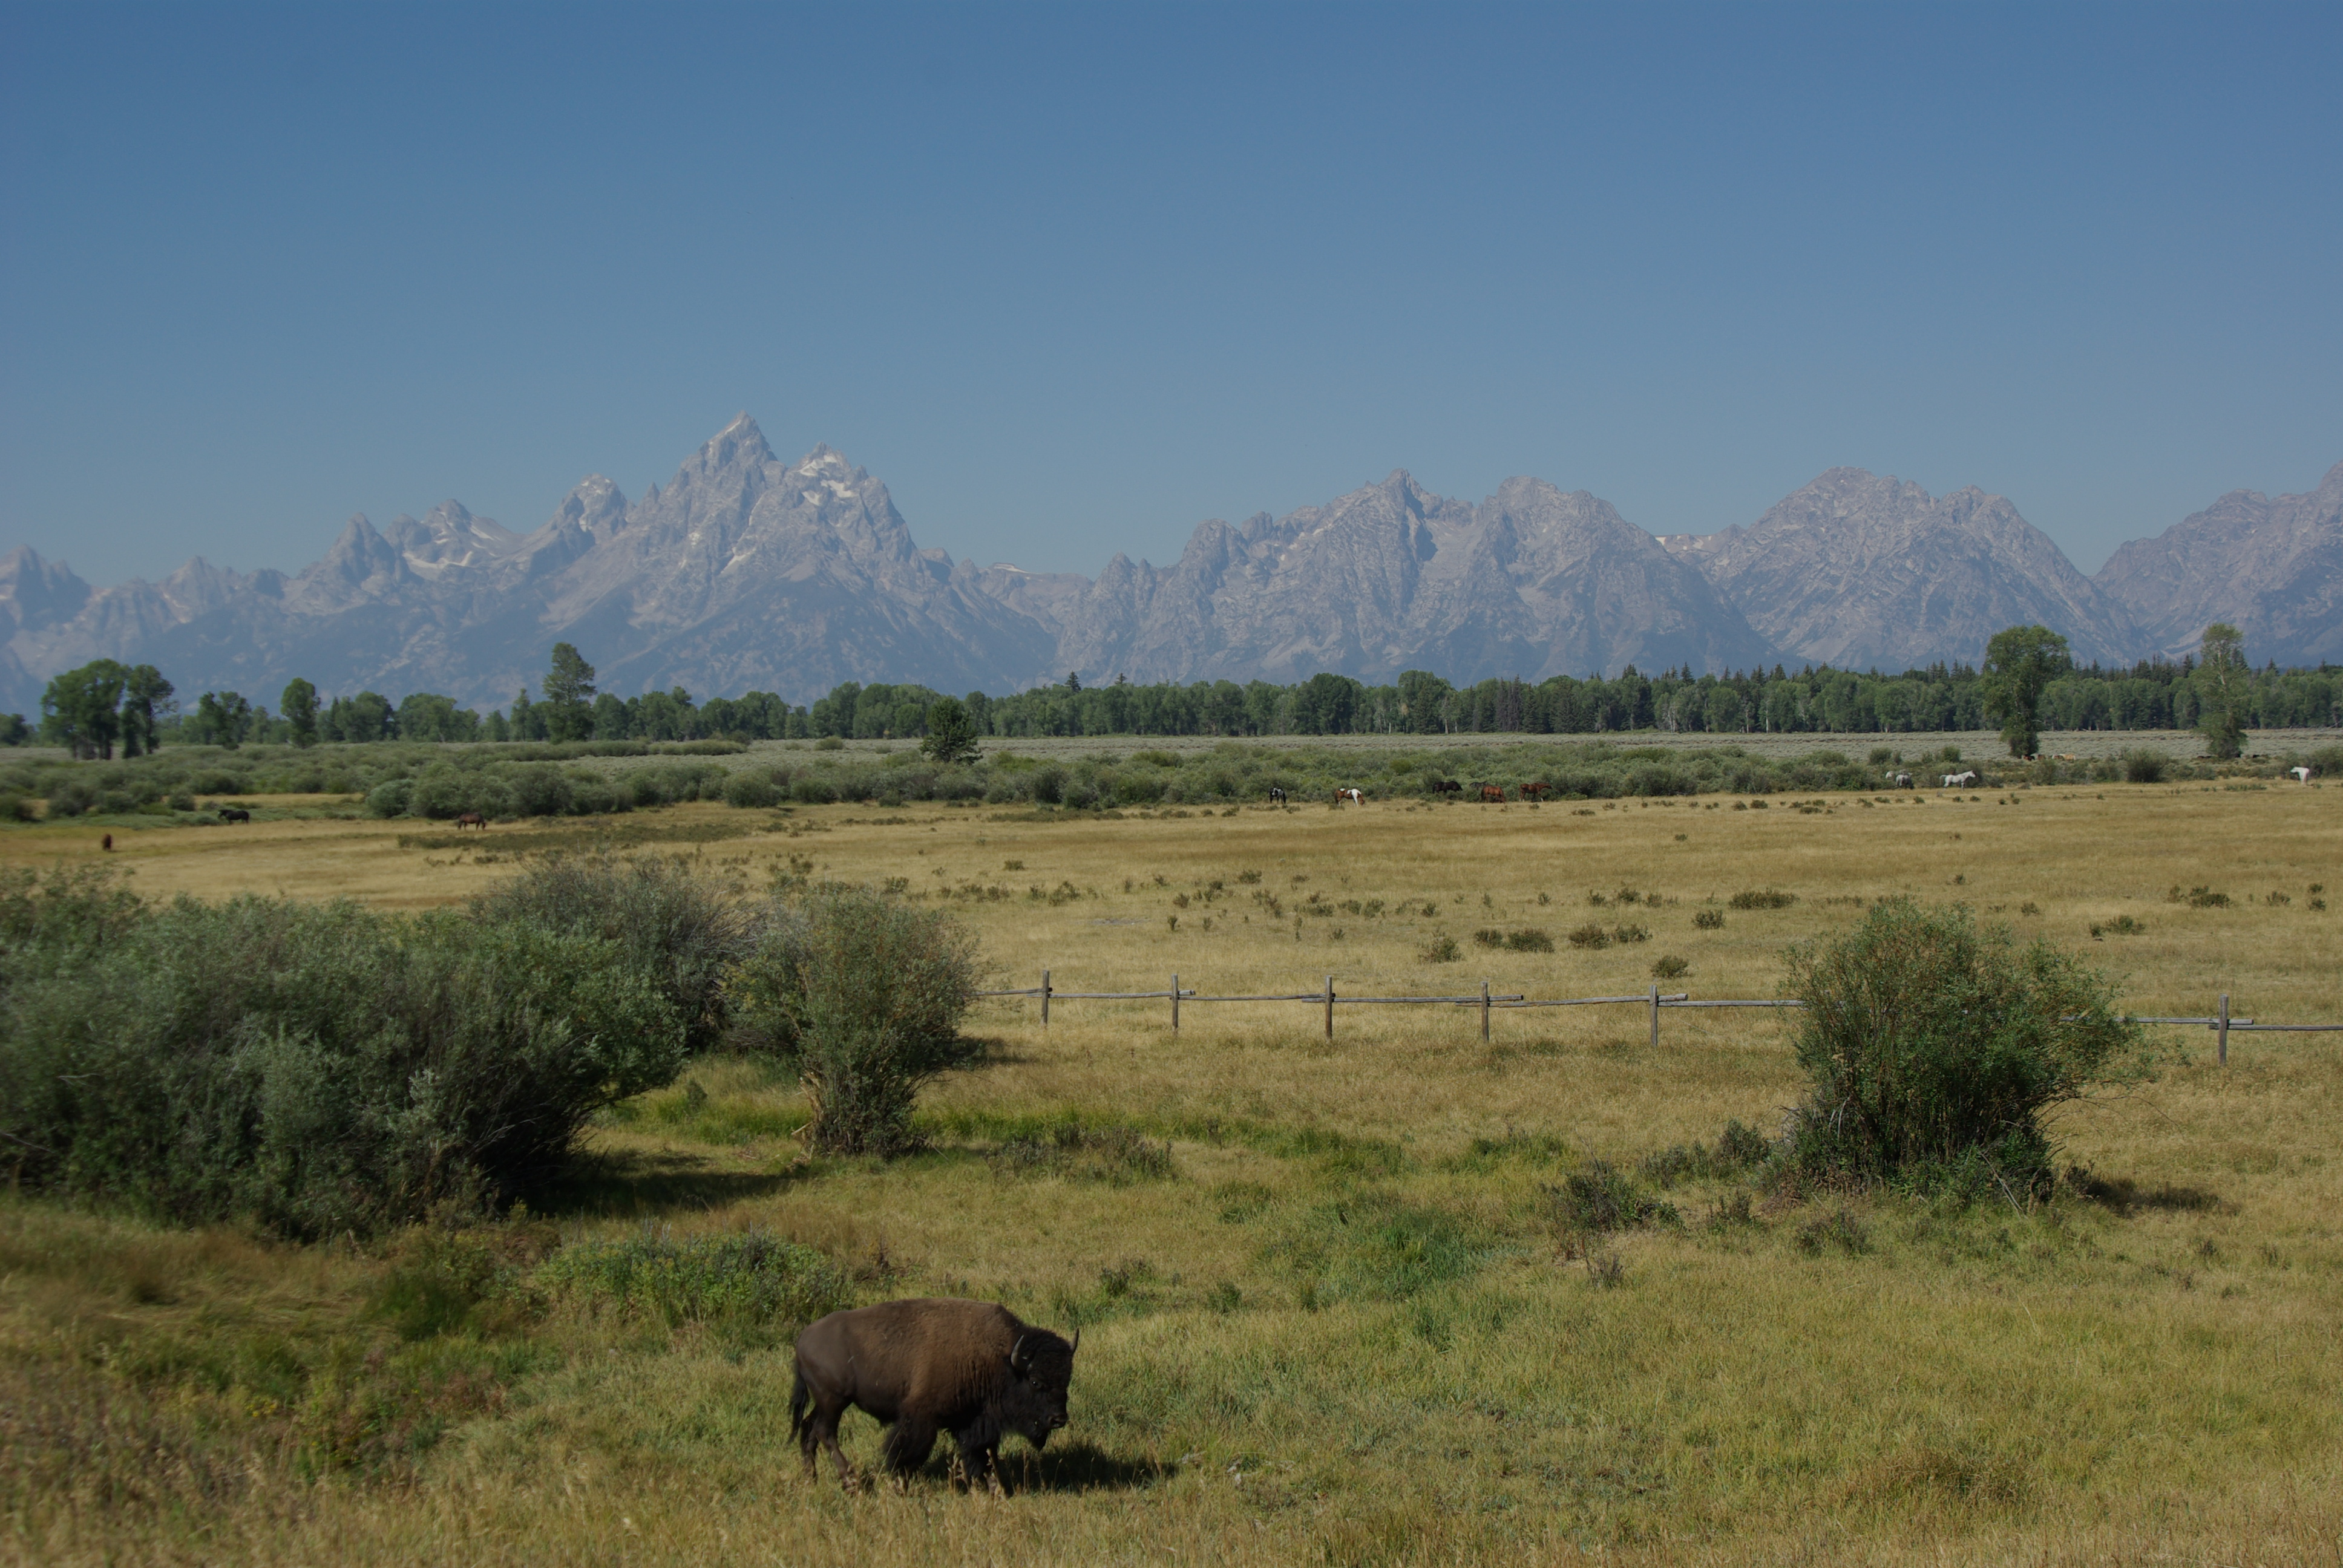 Posed under the Tetons for us.